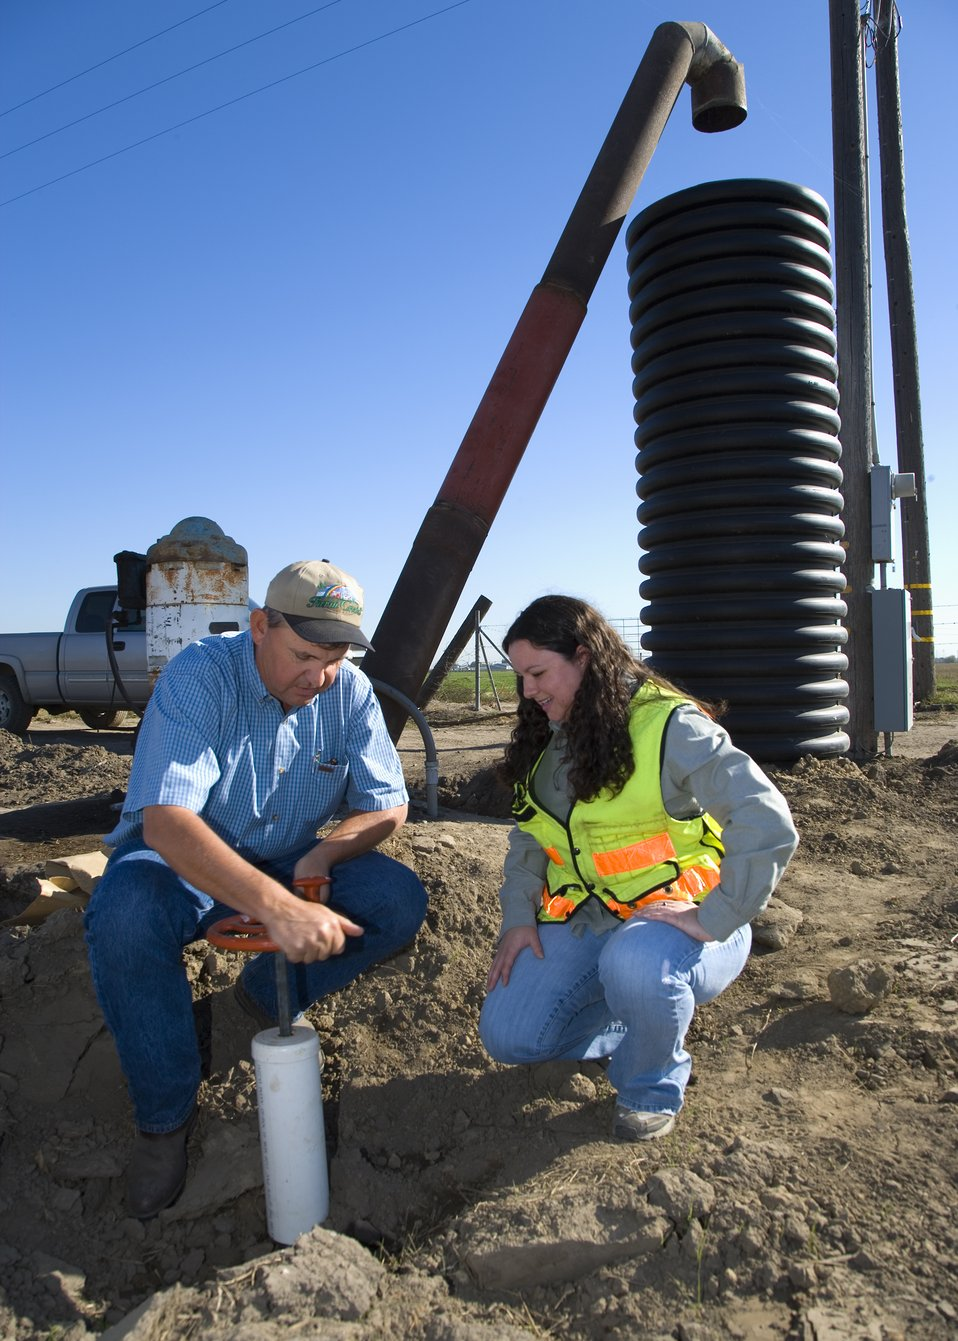 NRCS and farmer inspecting stand pipe on a dairy farm in California.